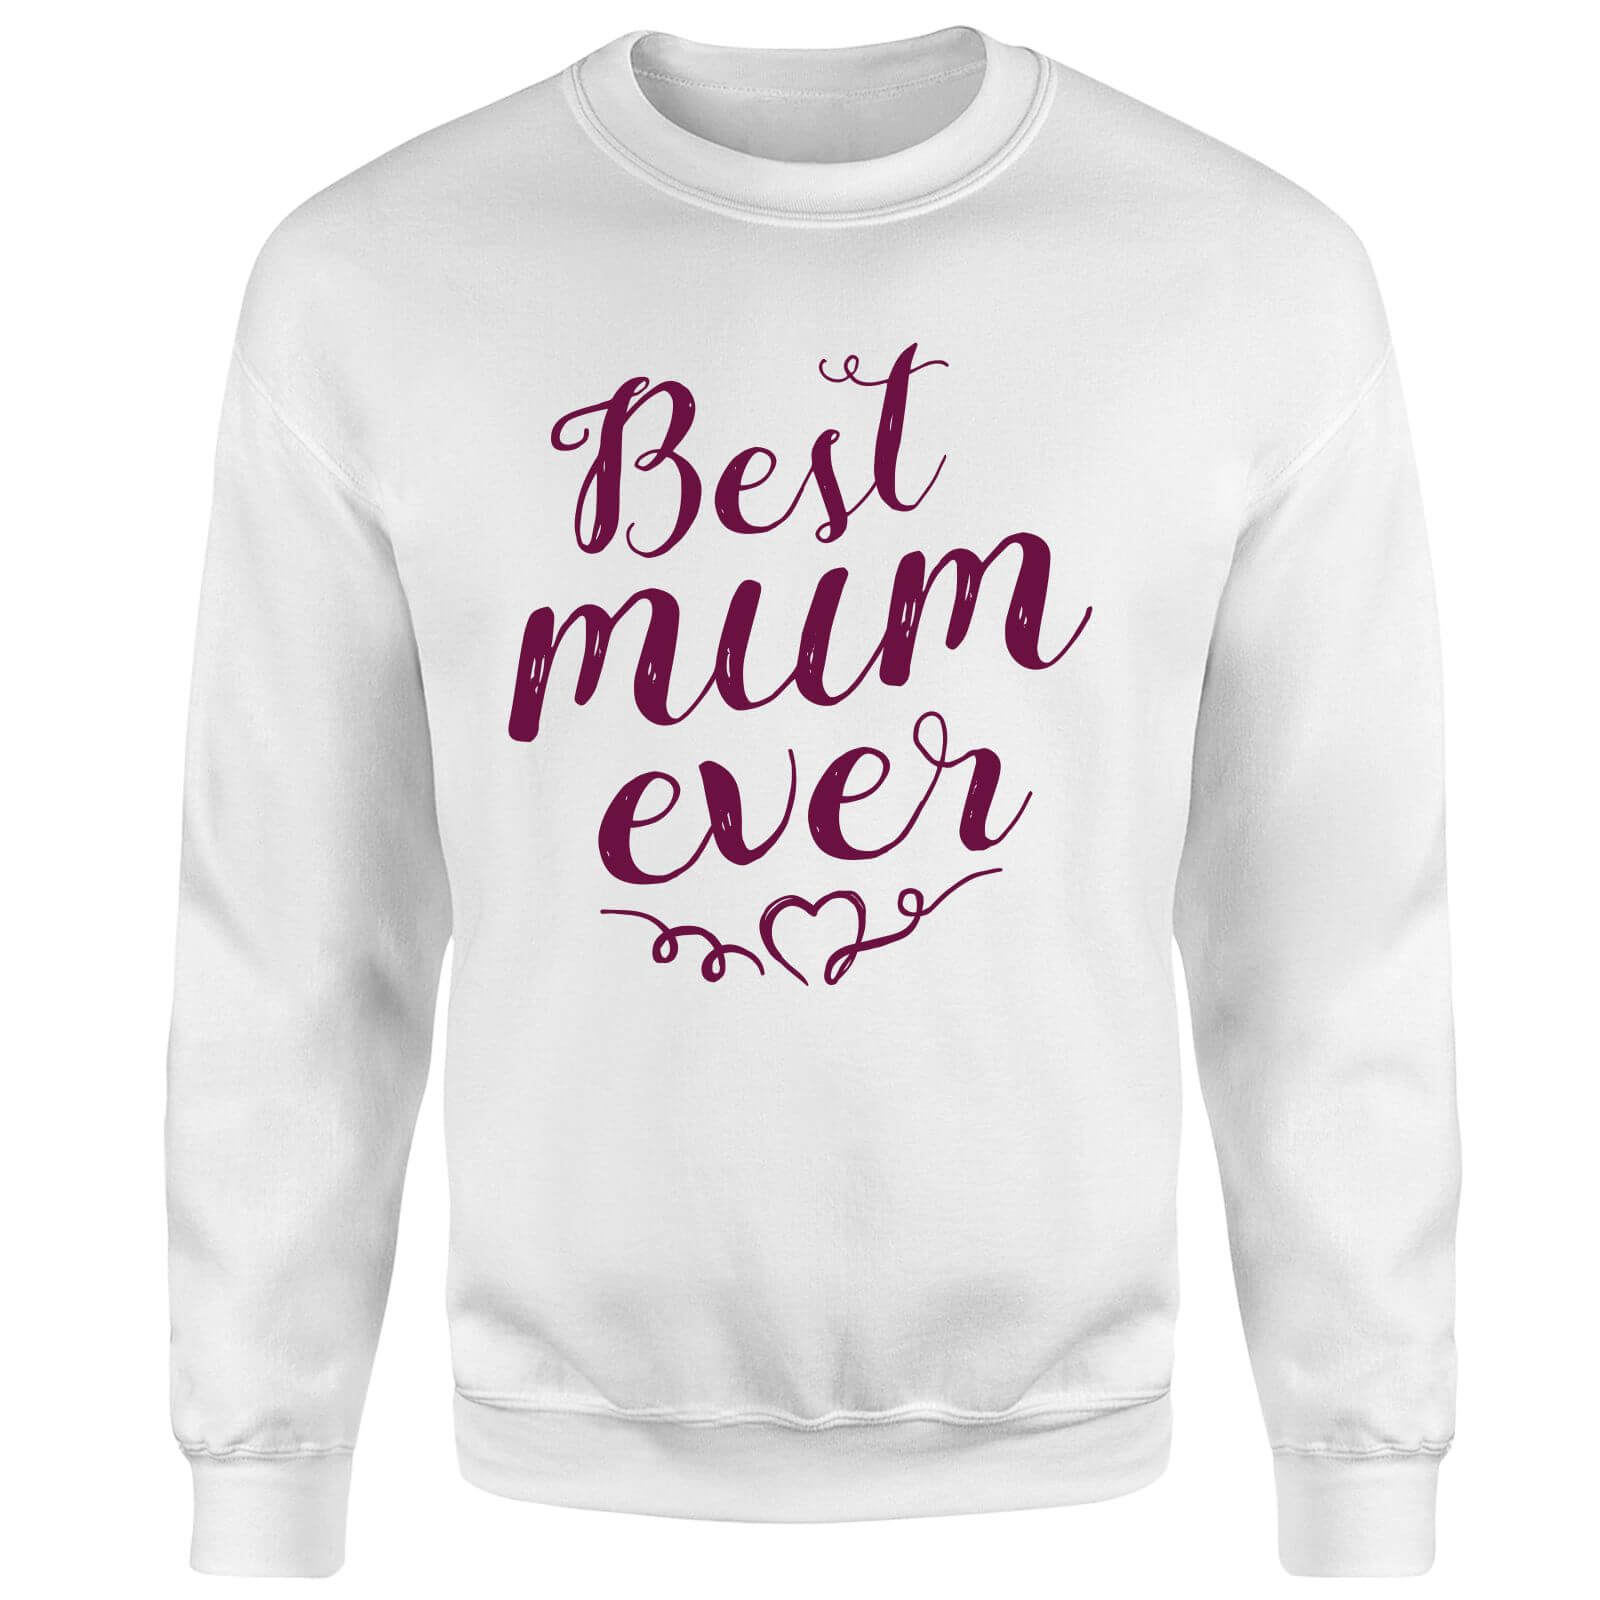 Best Mum Ever Sweatshirt - White